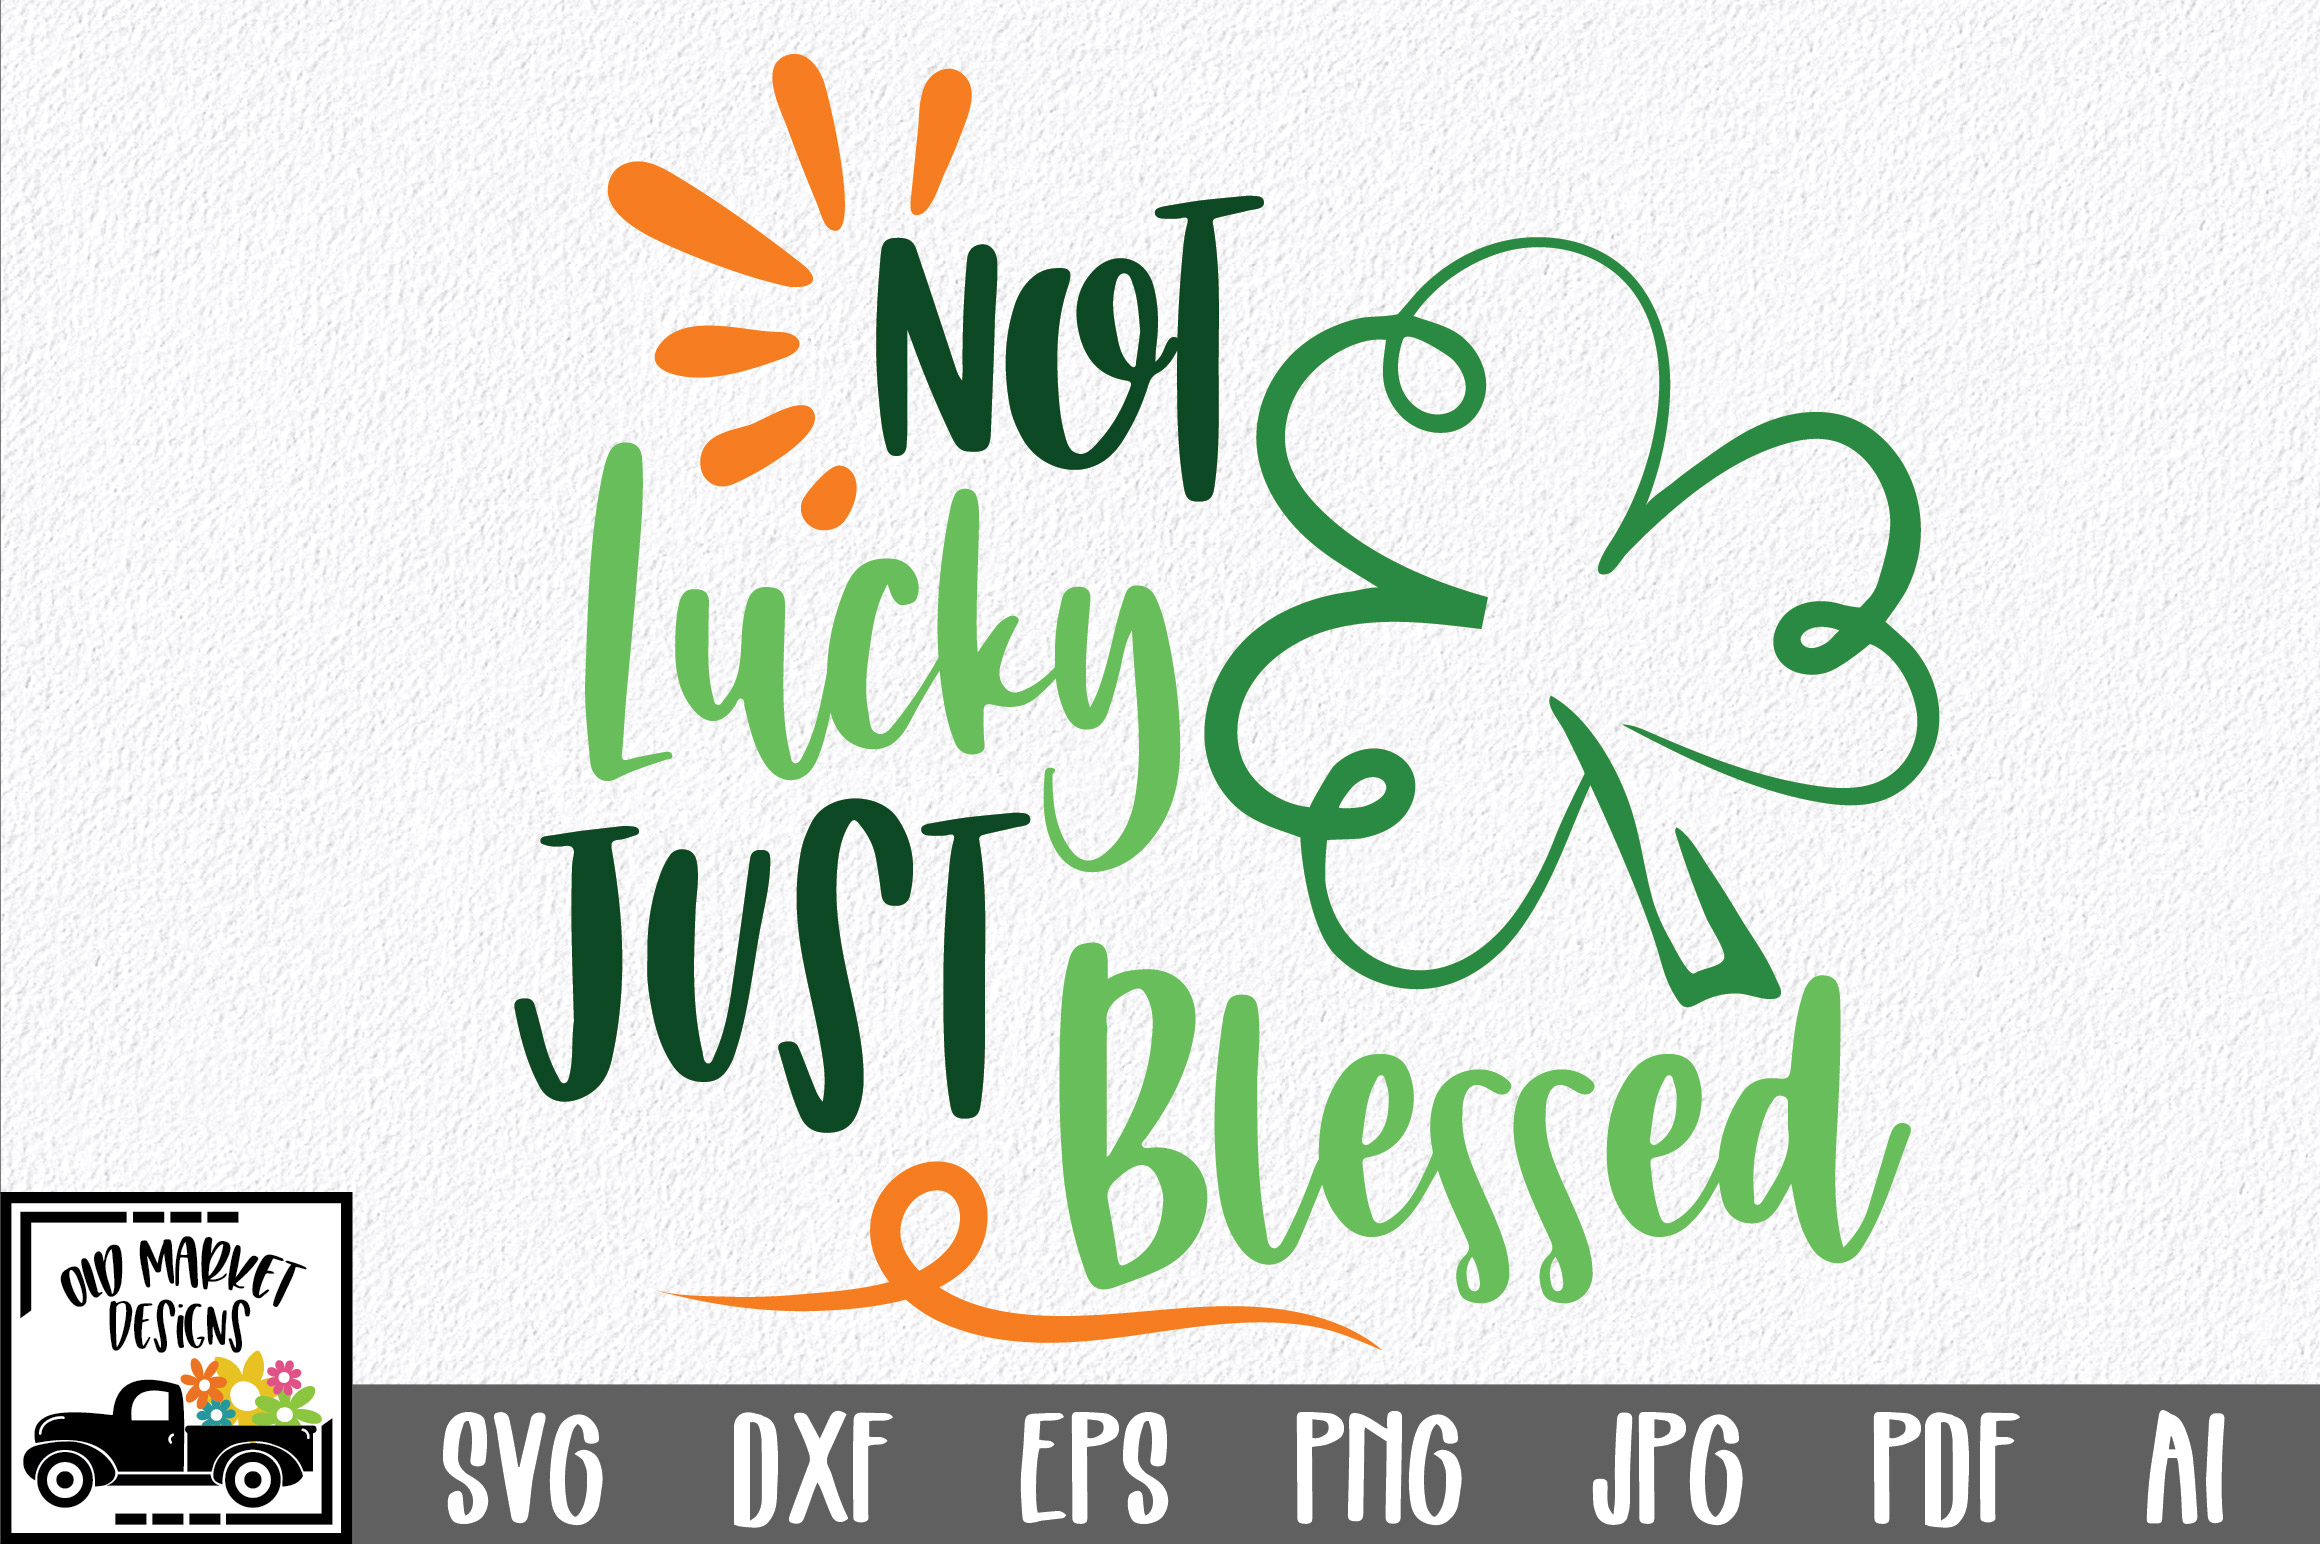 Download Free Not Lucky Just Blessed Svg Graphic By Oldmarketdesigns for Cricut Explore, Silhouette and other cutting machines.